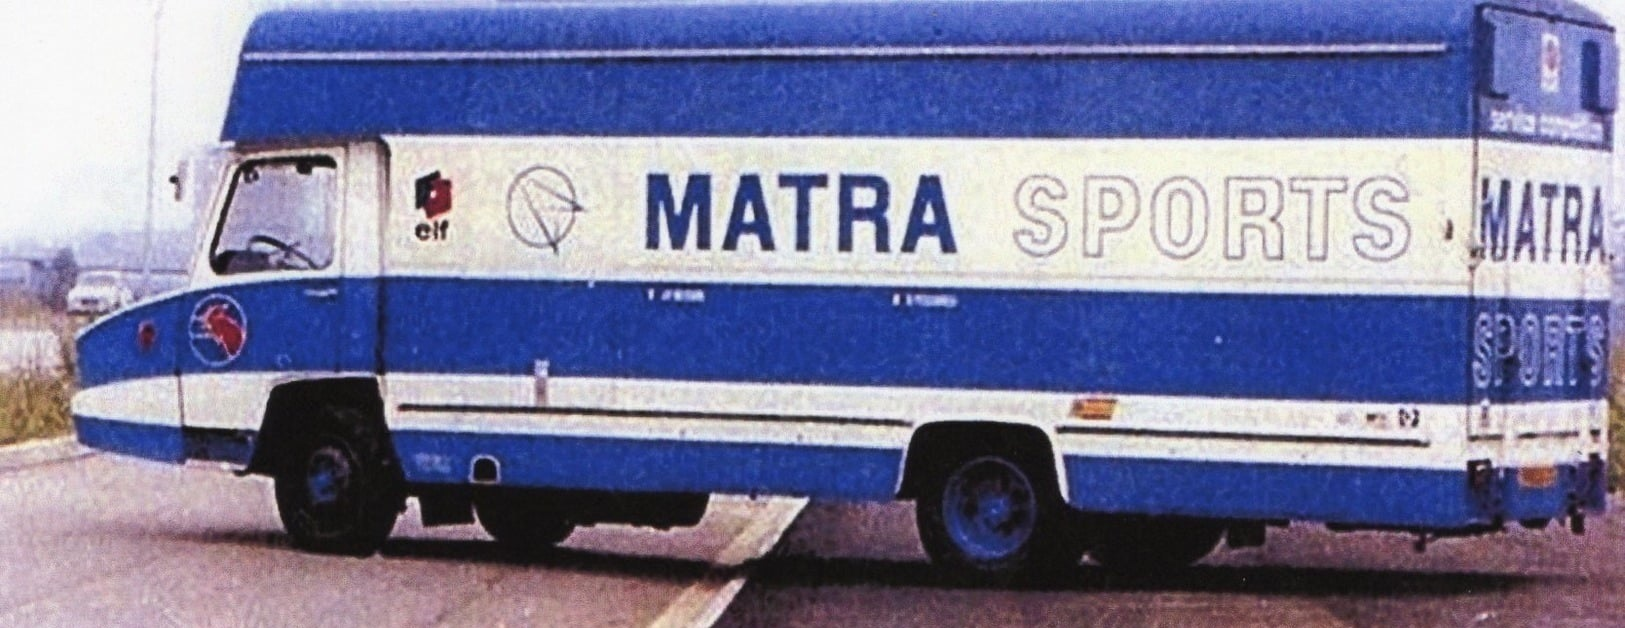 Matra-Course-services--(6)